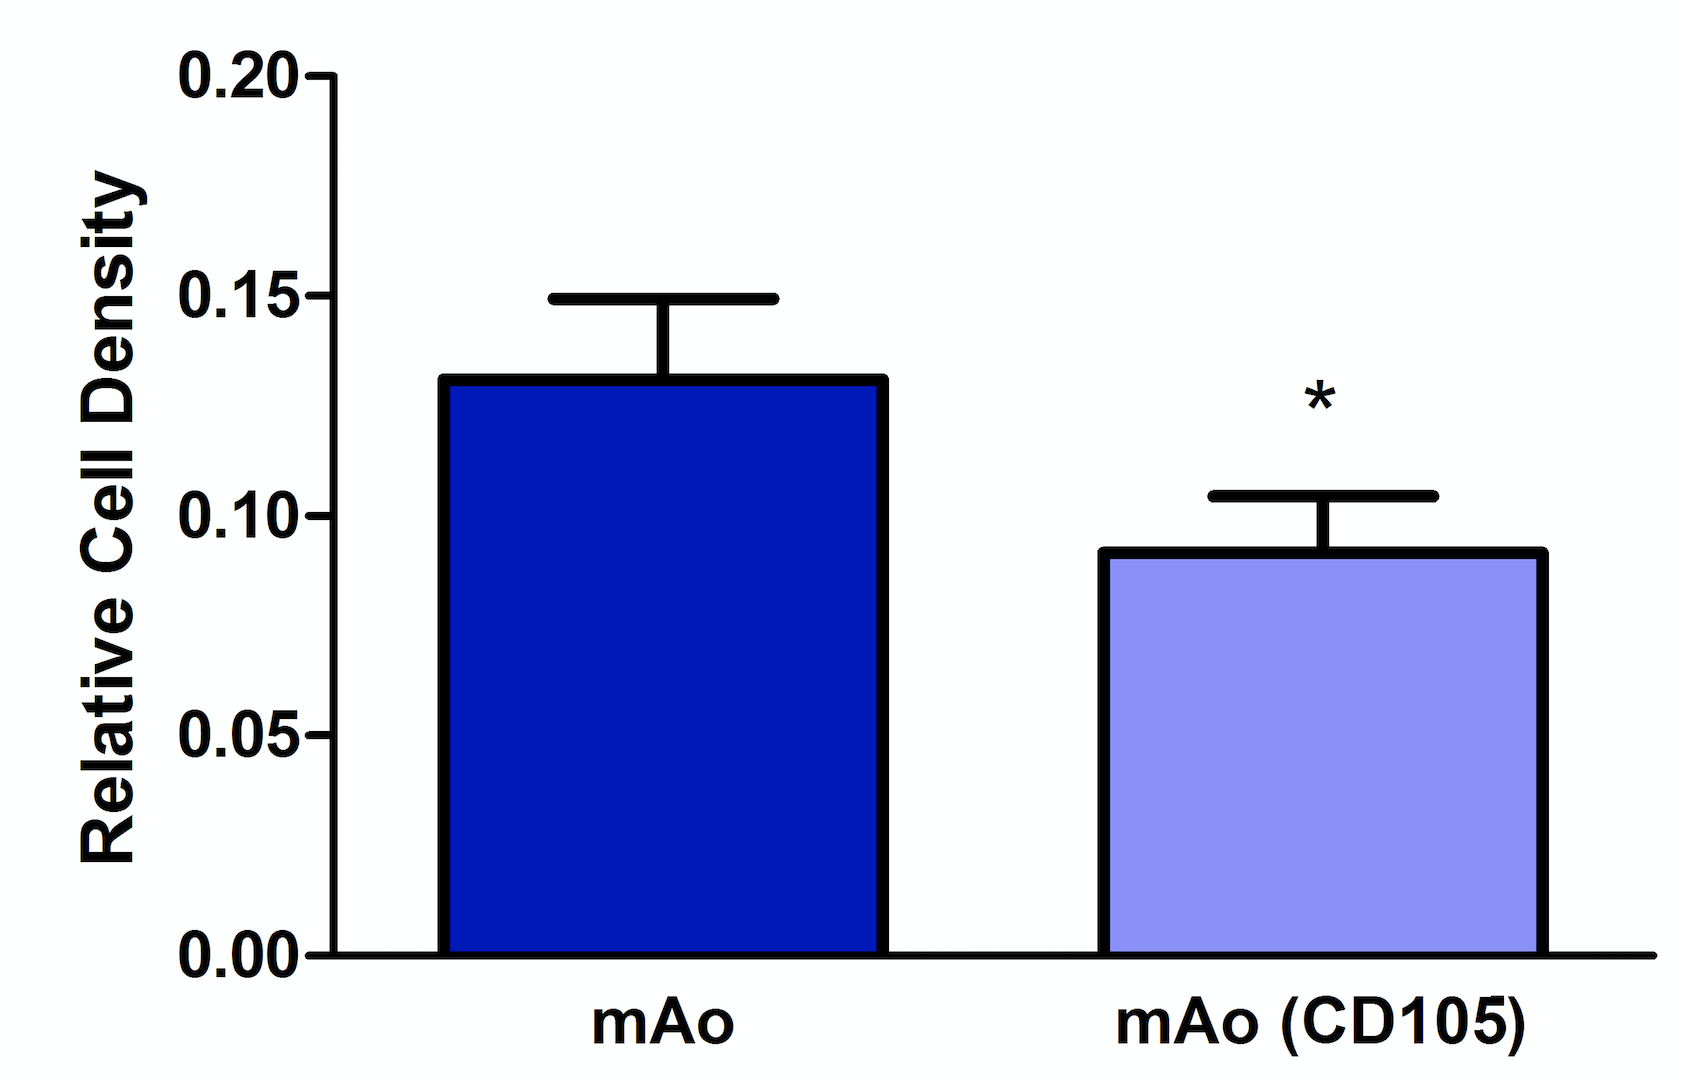 Figure 4. Reduction of CD105 expression results in a decreased mAo progenitor cell density.  Cell density was measured on day 5 post-transfection using methylene blue. Data are expressed as mean ± SEM, and are representative of three separate experiments each with  n  = 6. *Statistical significance as determined by t-test.